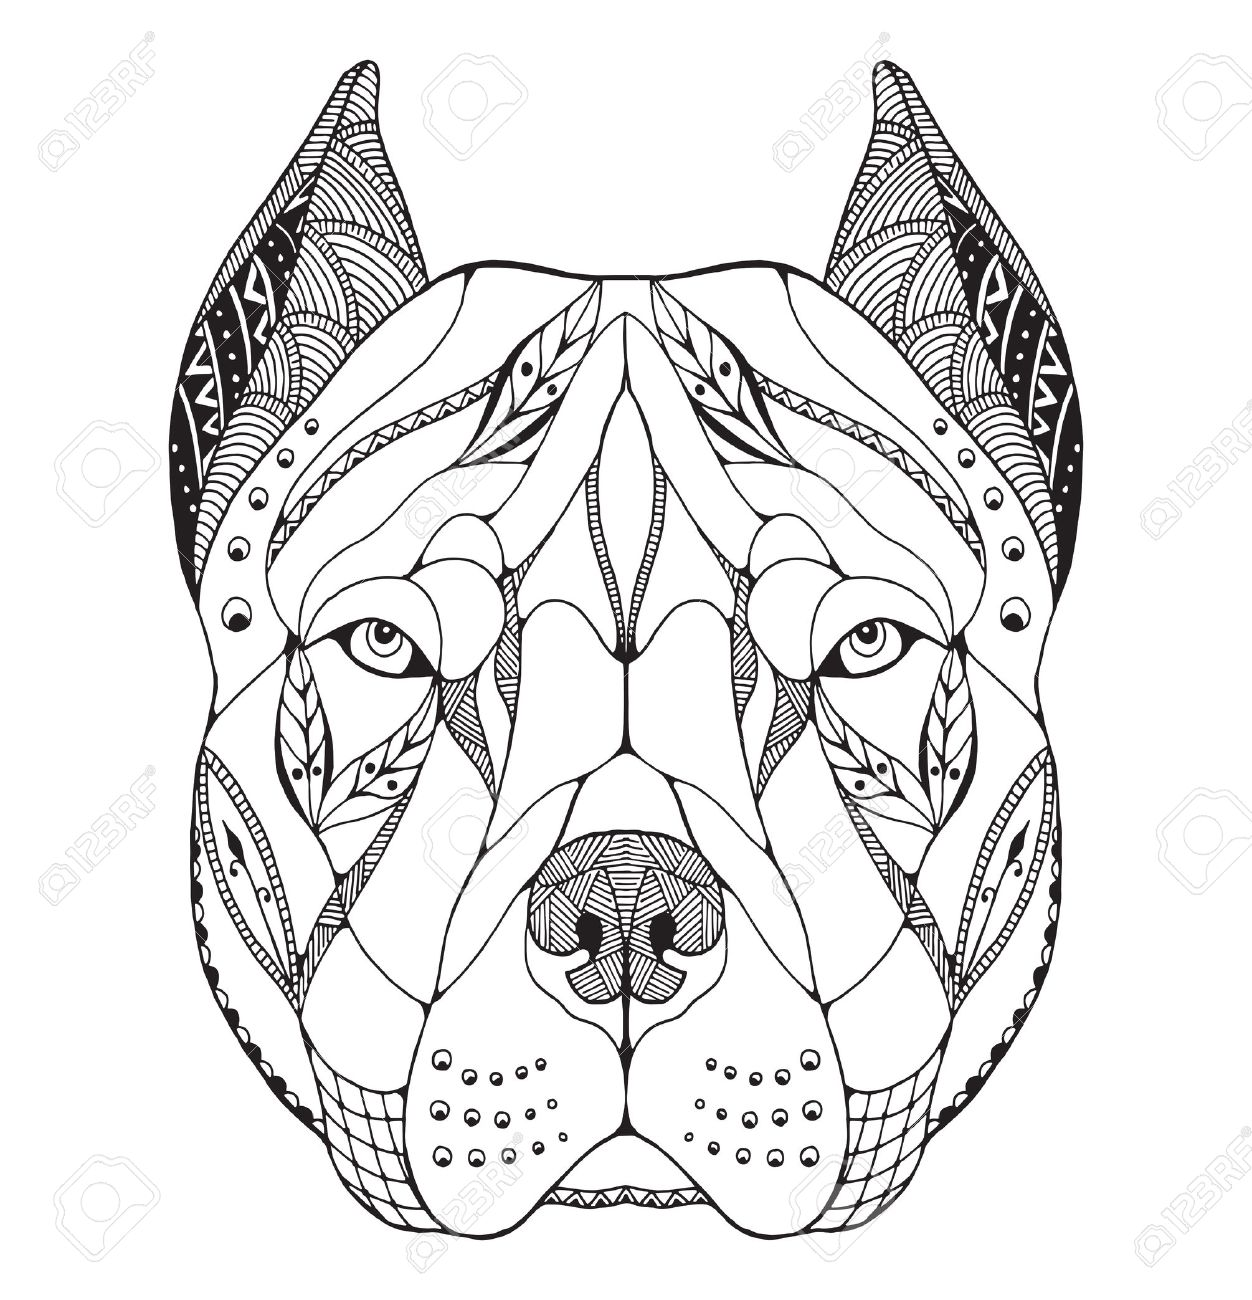 Pit bull terrier head zentangle stylized, vector, illustration, freehand pencil, hand drawn, pattern. Zen art. Ornate vector. Lace. Print for t-shirts. - 69809314